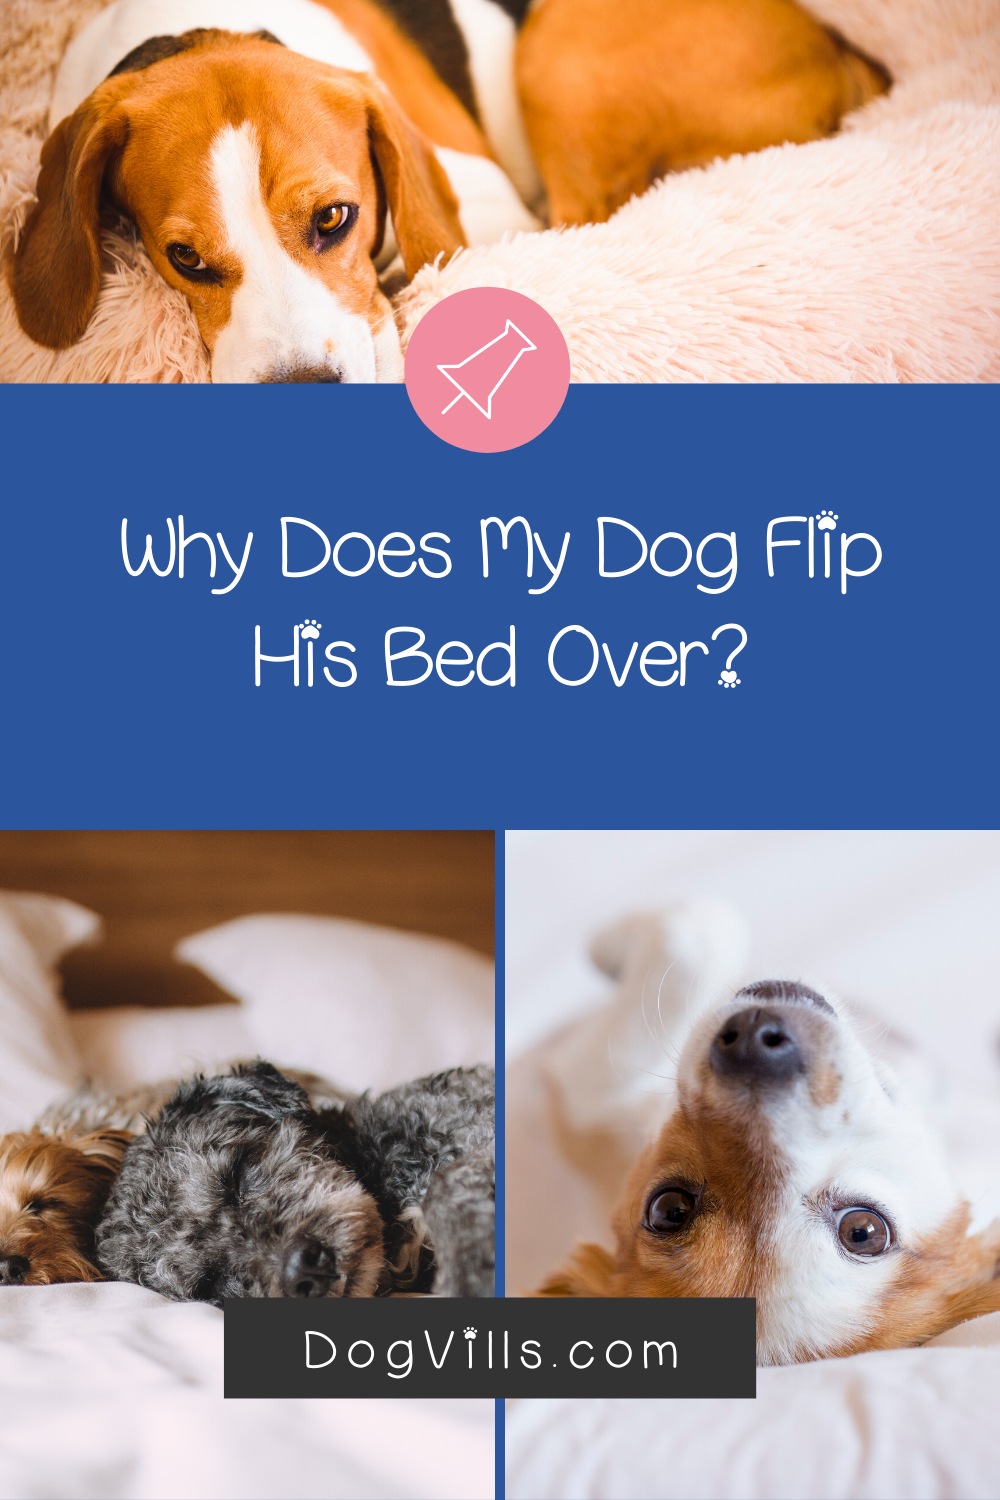 10 Reasons Why Your Dog Flips His Bed Over Dog Behavior Training Dogs Your Dog